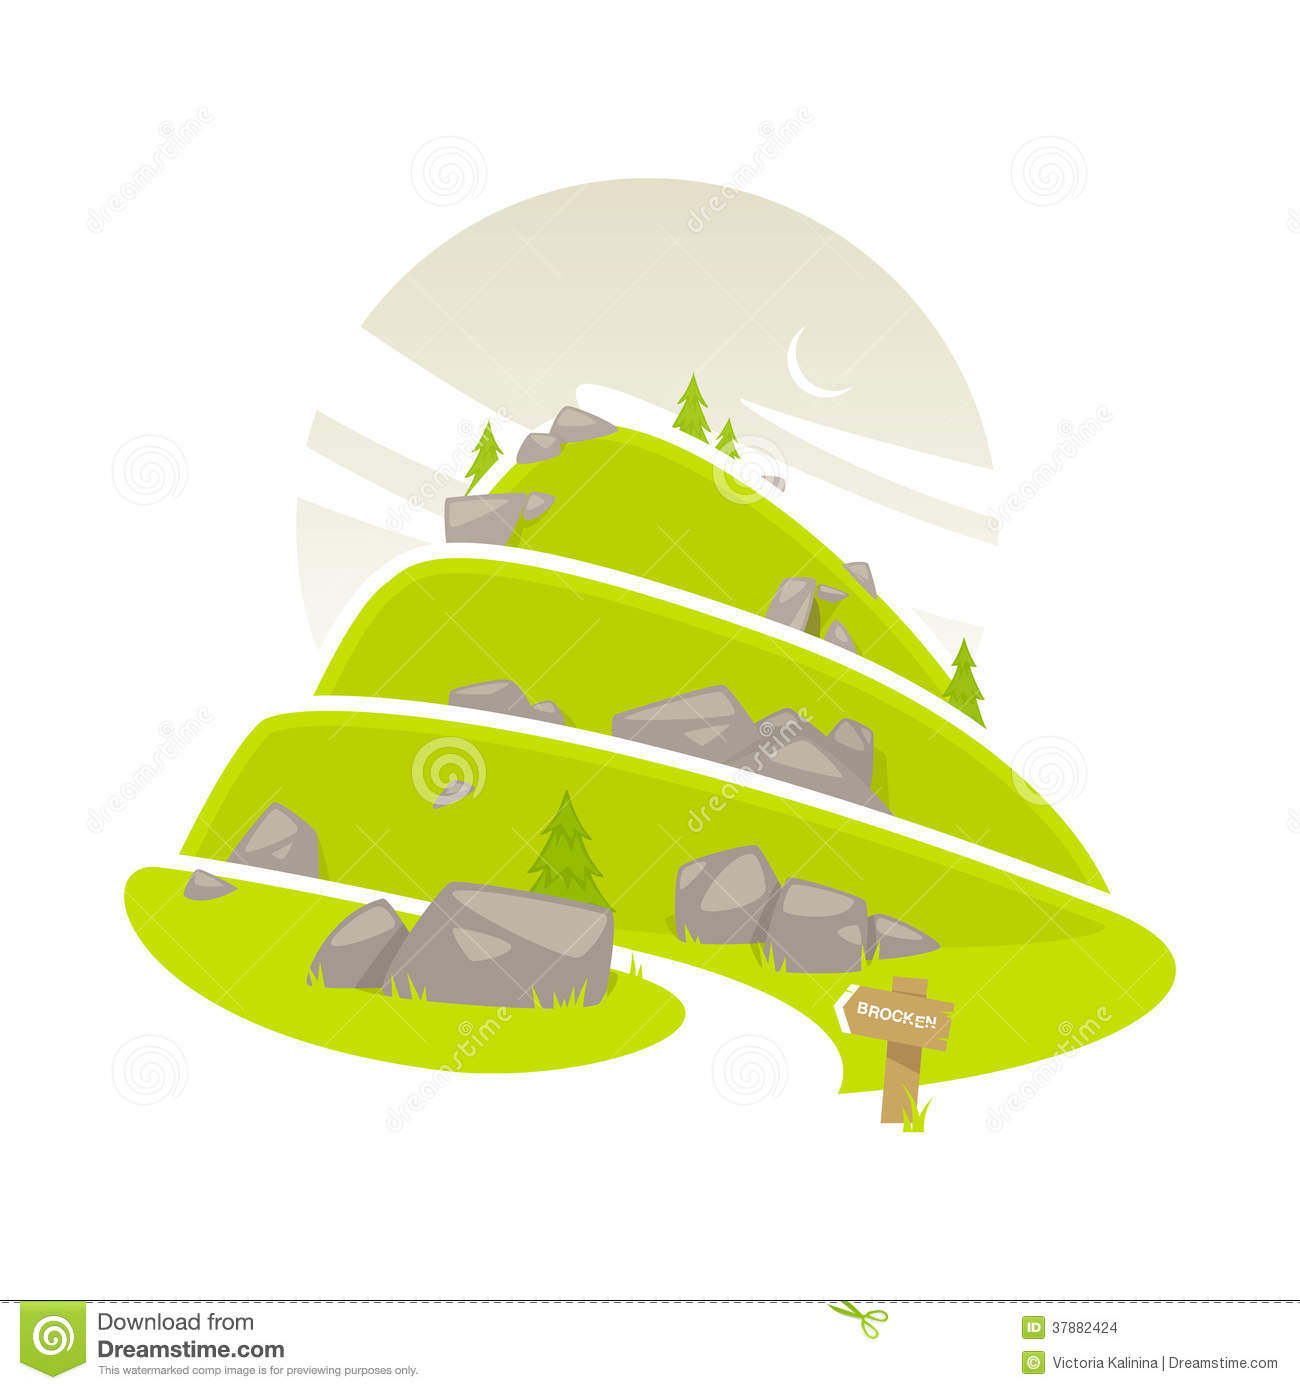 Mountain path clipart.